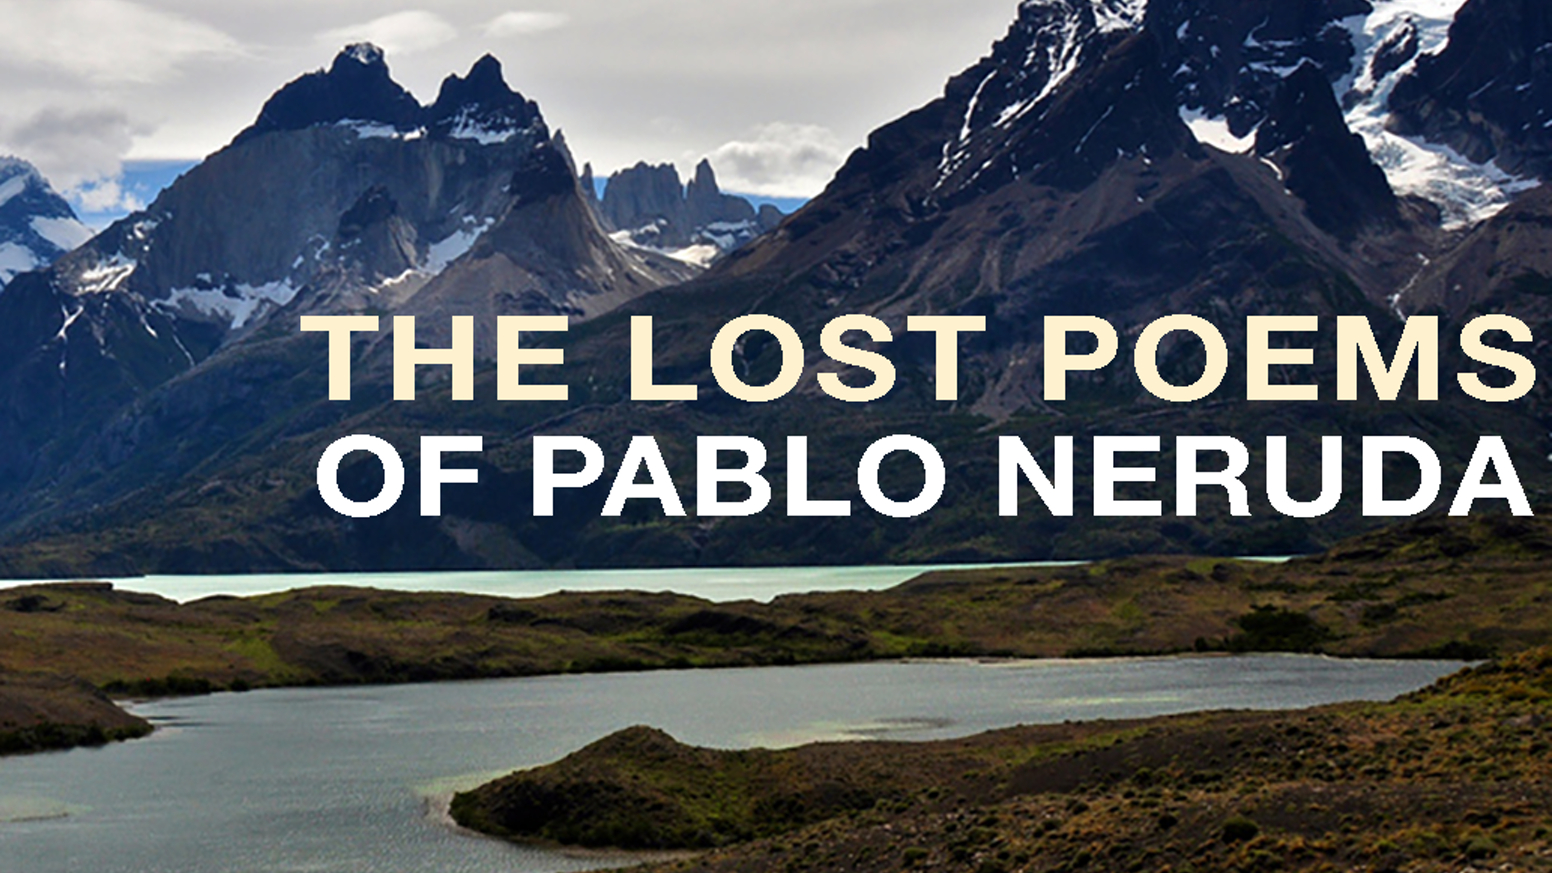 Help Copper Canyon Press publish a beautiful collection of previously undiscovered poems by Pablo Neruda